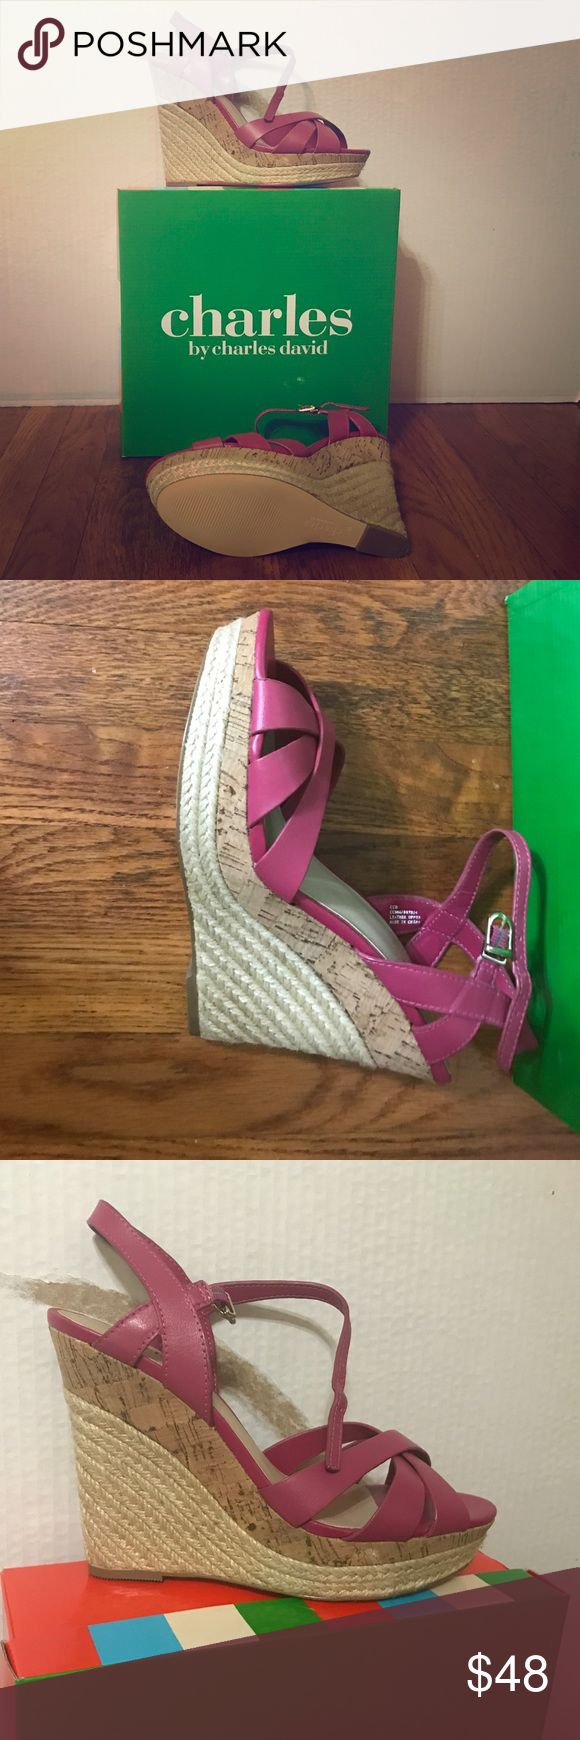 CHARLES DAVID Shoe Styles: Astro                                                Color: Magenta                                                    Material: Leather                                                Size: 7.5 Charles David Shoes Wedges